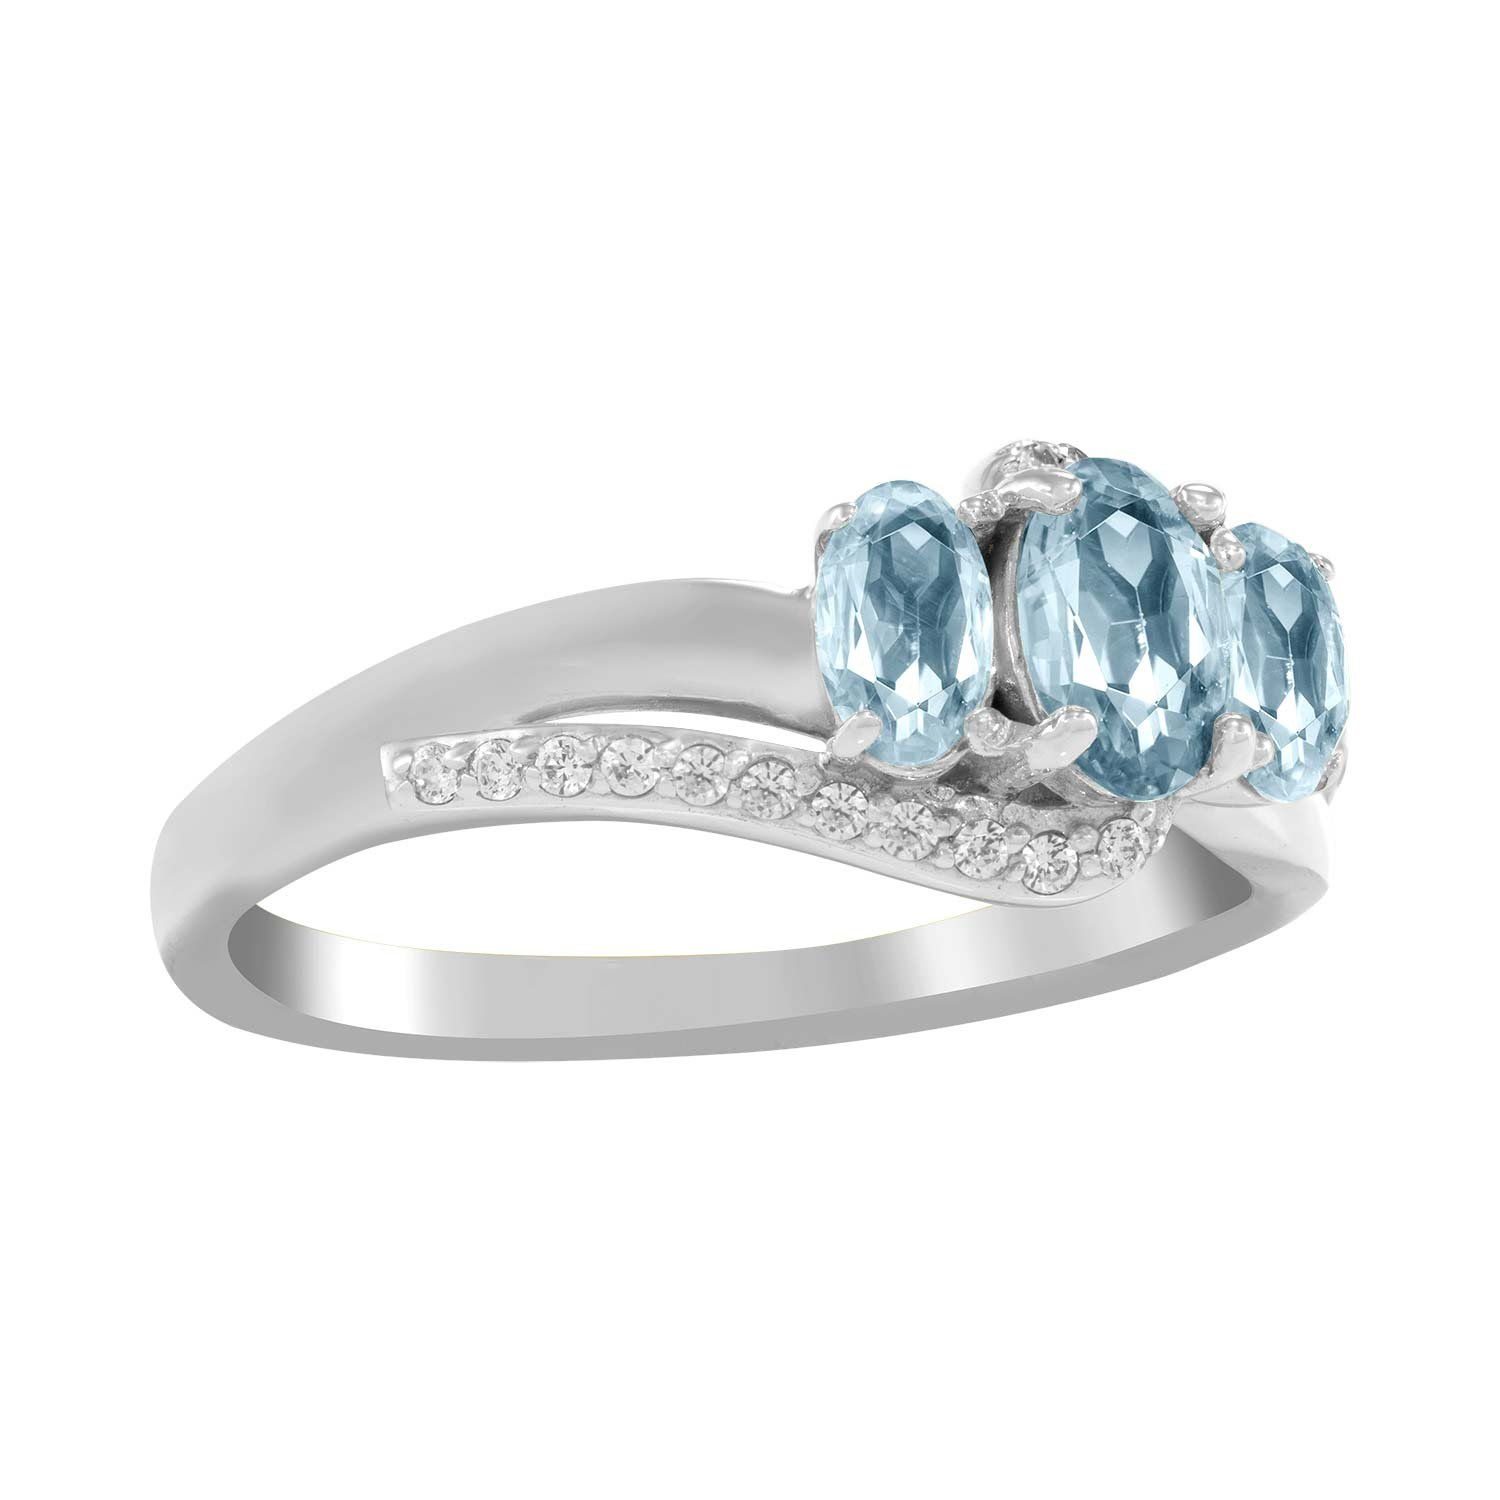 ArtCarved Beauty Custom Simulated Birthstone Womens Ring Sterling Silver Size 11.5 LQTRIO-SS-S-03-11.5